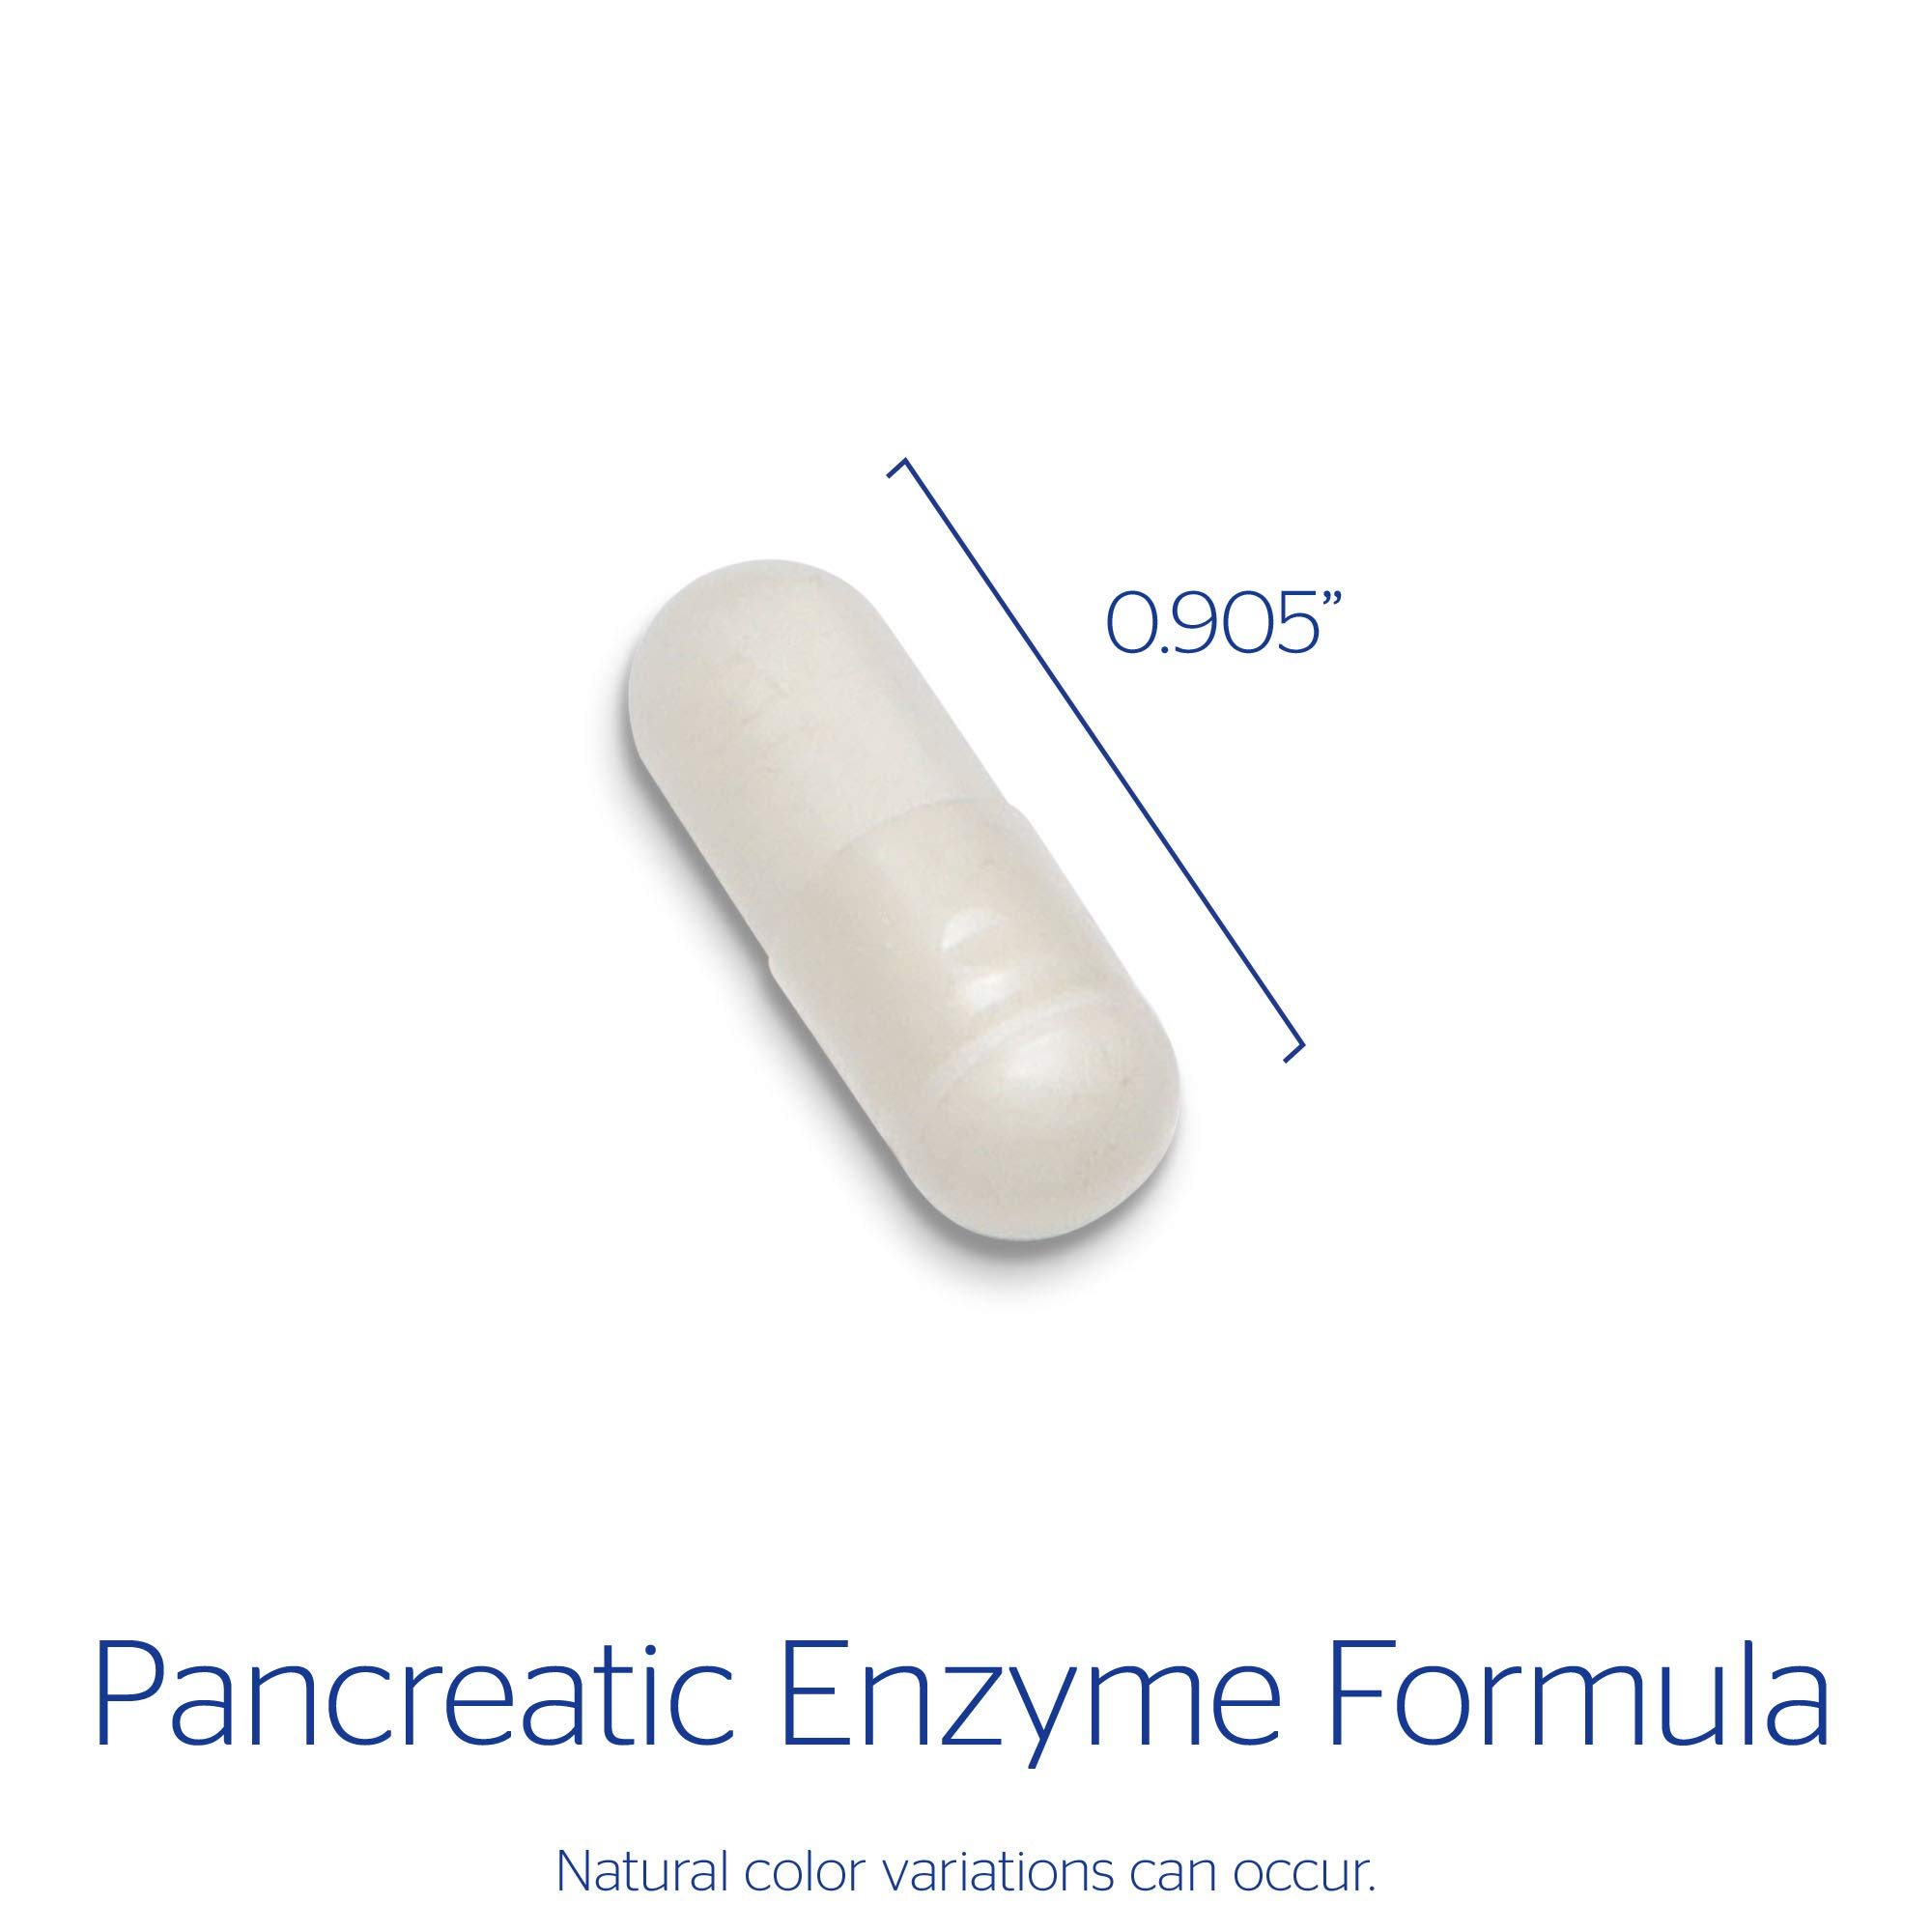 Pure Encapsulations - Pancreatic Enzyme Formula - Hypoallergenic Supplement to Support Proper Digestive Function* - 180 Capsules by Pure Encapsulations (Image #3)